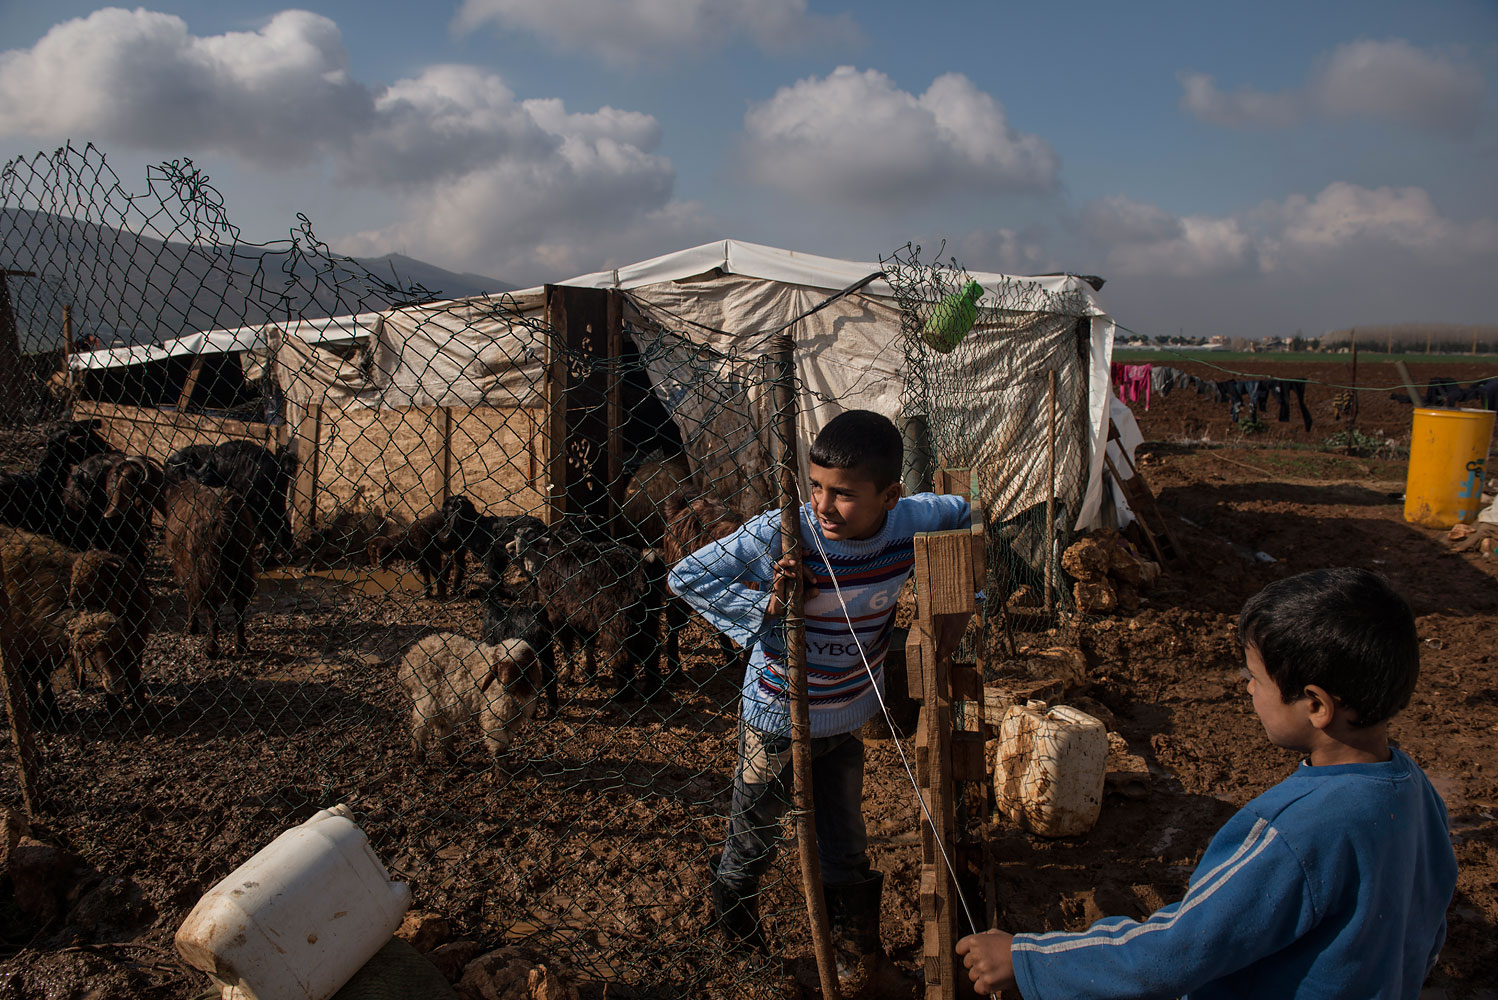 Syrian refugee, Khalid, 11, from Homs, tends to the family's goats at a tented settlement in Turbide in the Bekaa Valley, Lebanon.